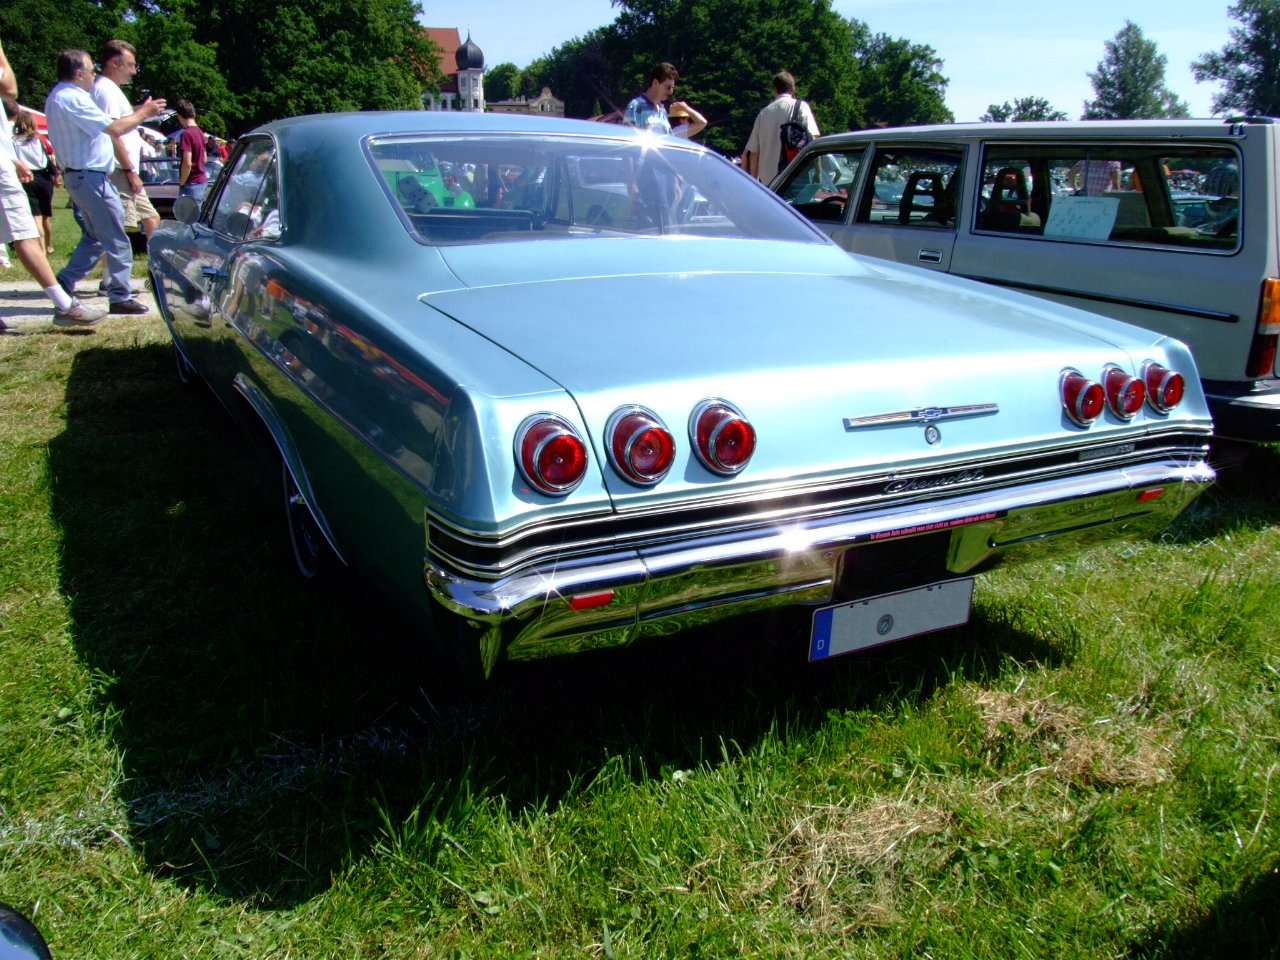 21 best impala tails images on pinterest impala chevrolet impala and vintage cars